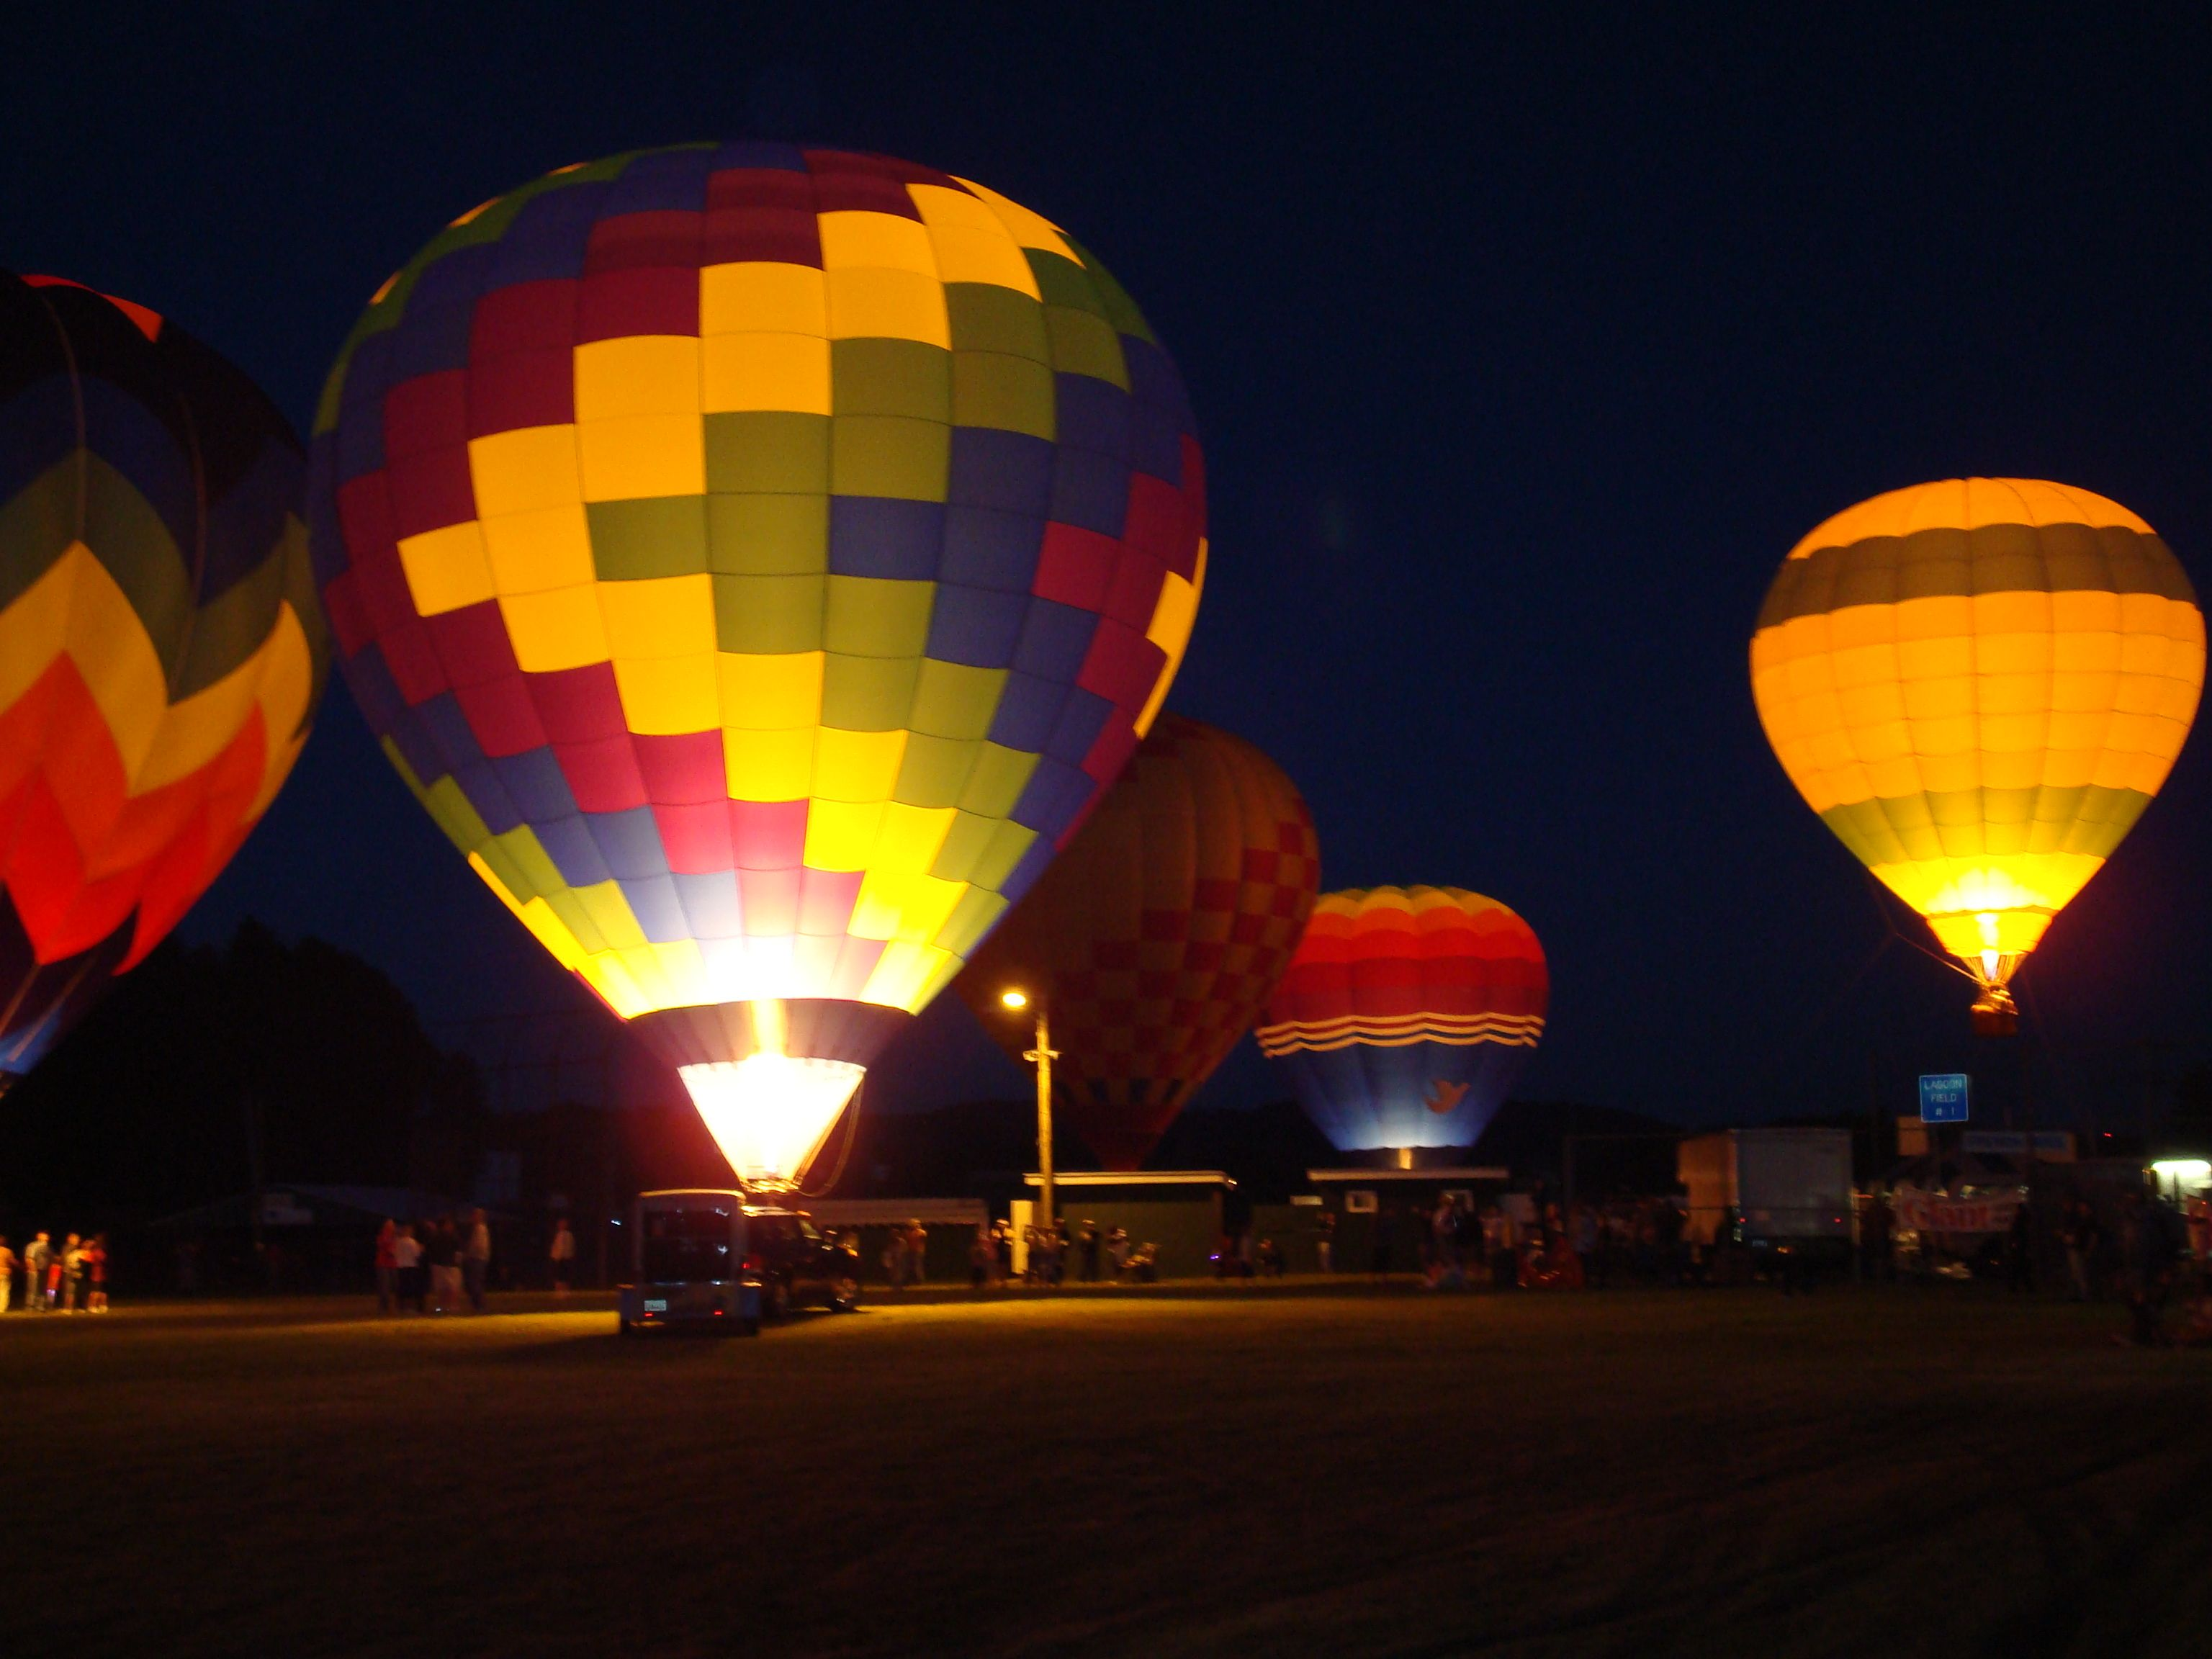 Wellsville NY Hot Air Balloon Festival Fun places to